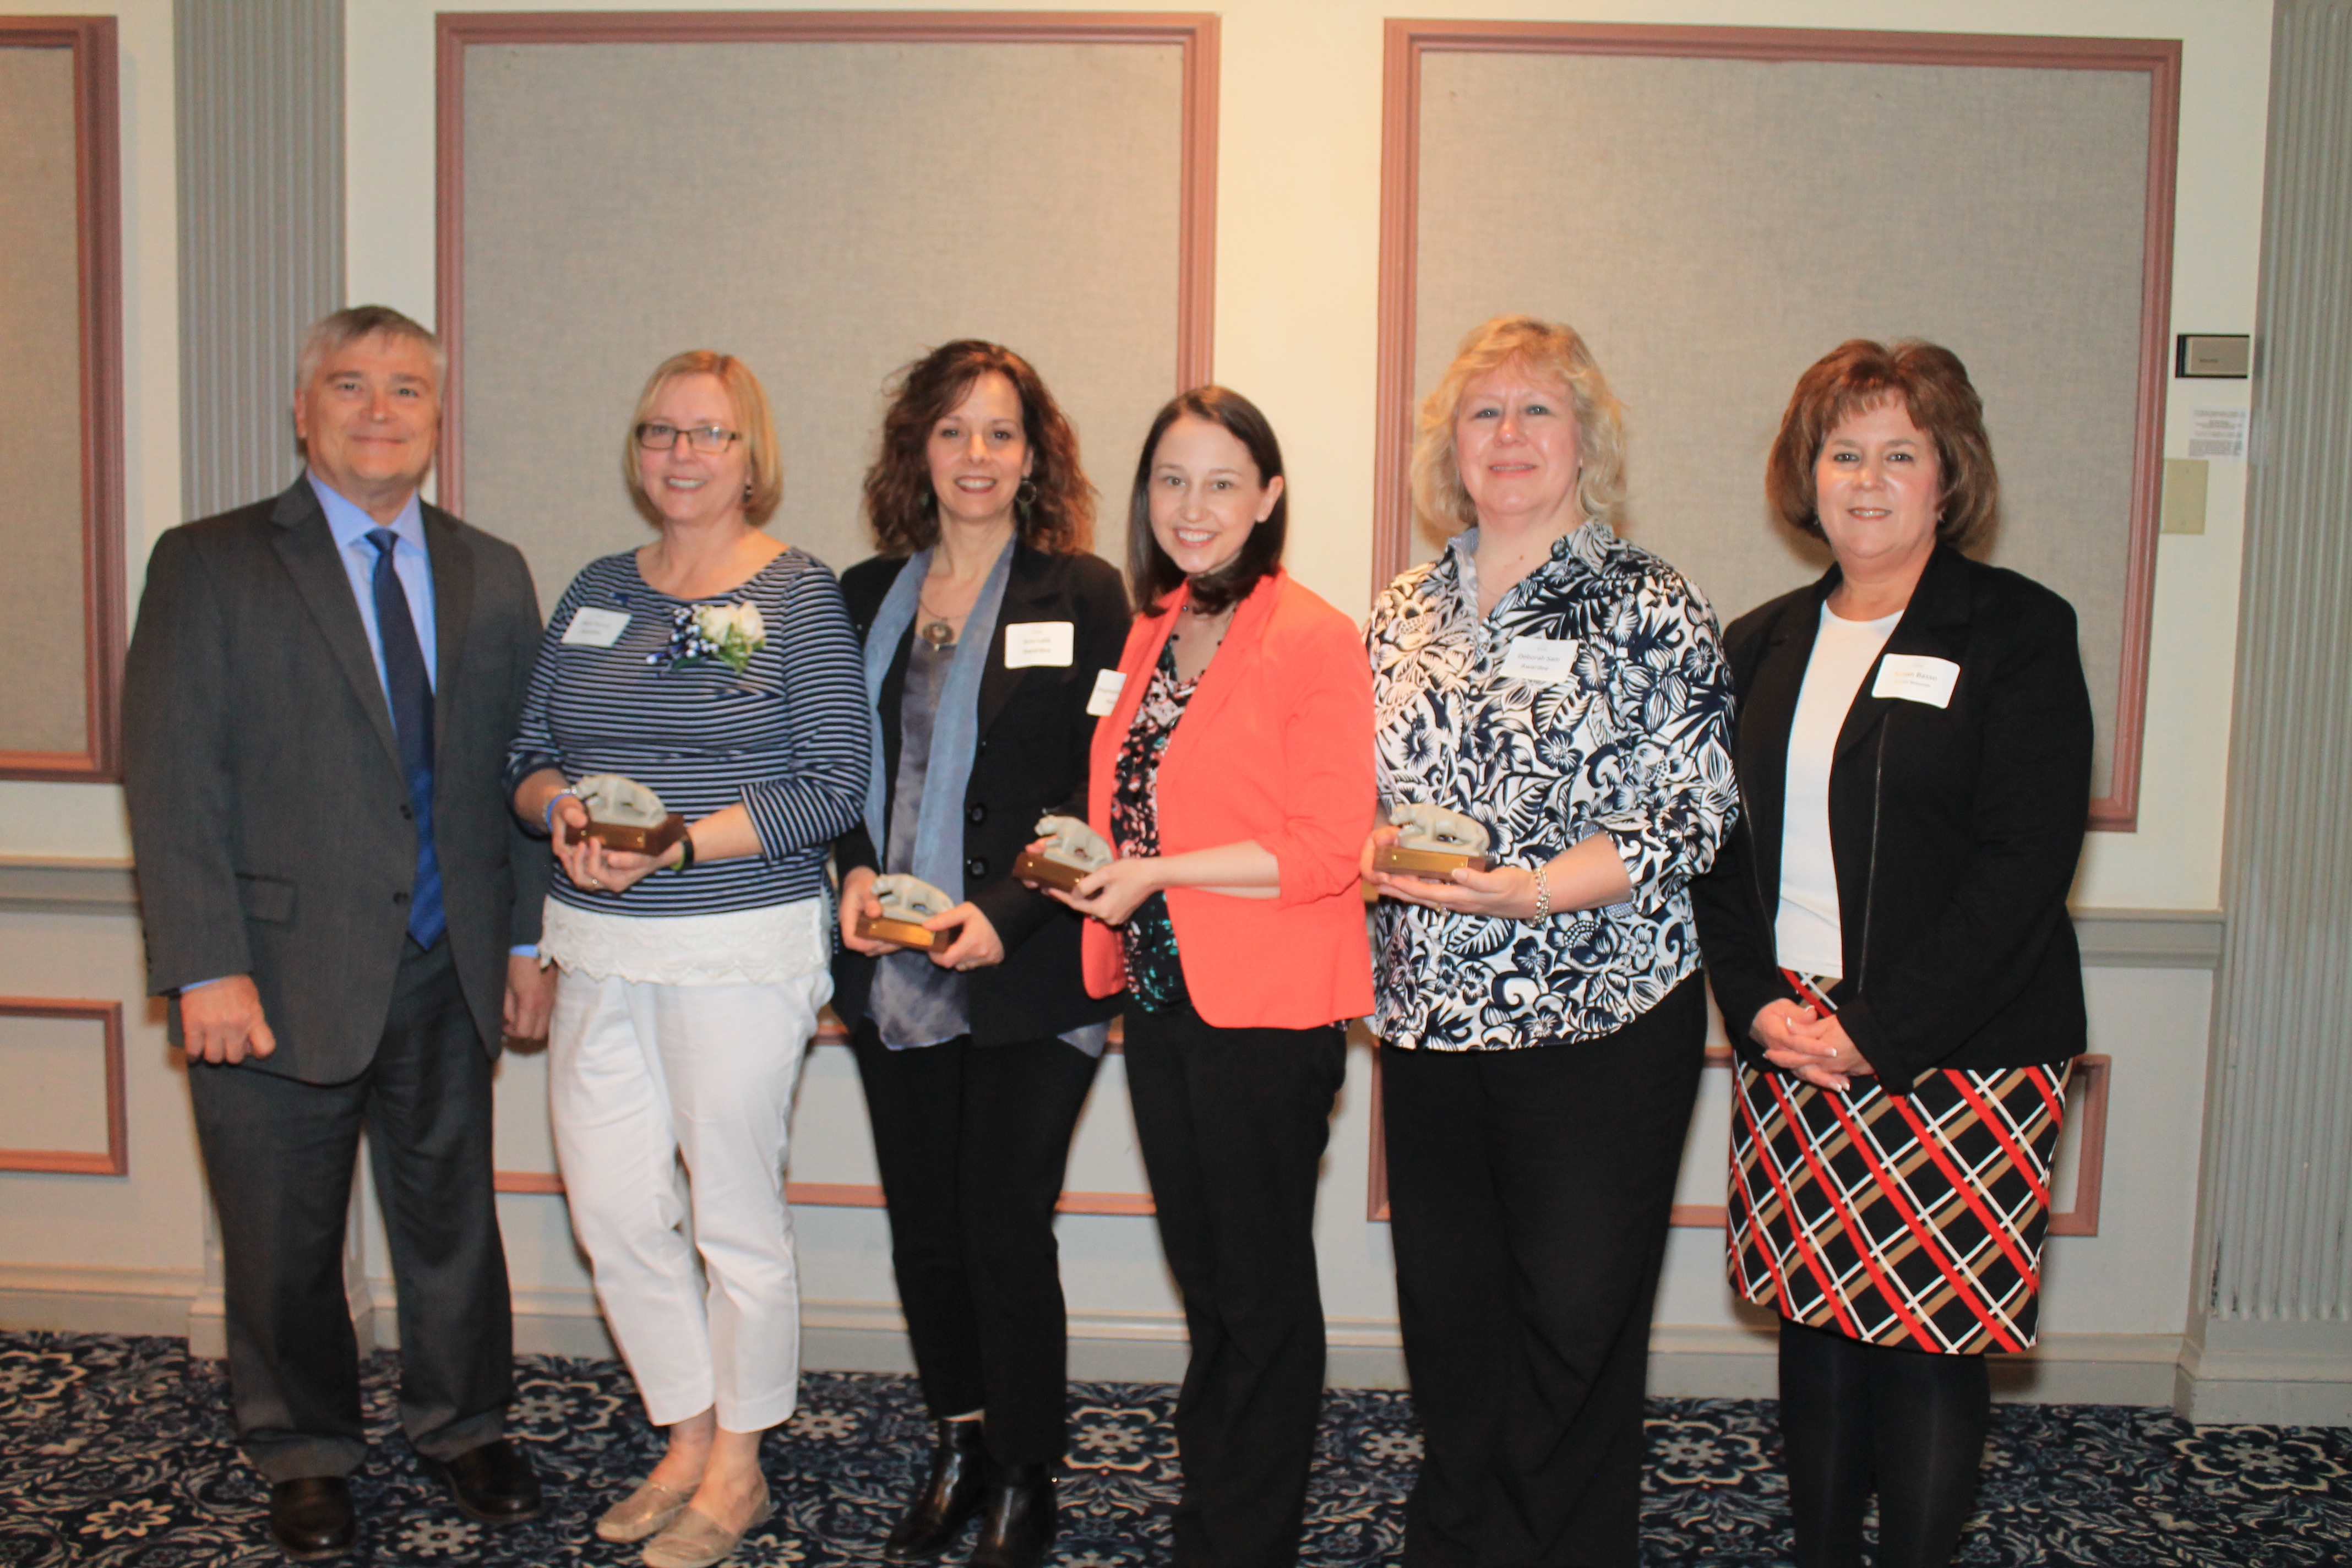 2015 Award recipients with Susan Basso and President Barron: Caolyn Saona, Karen